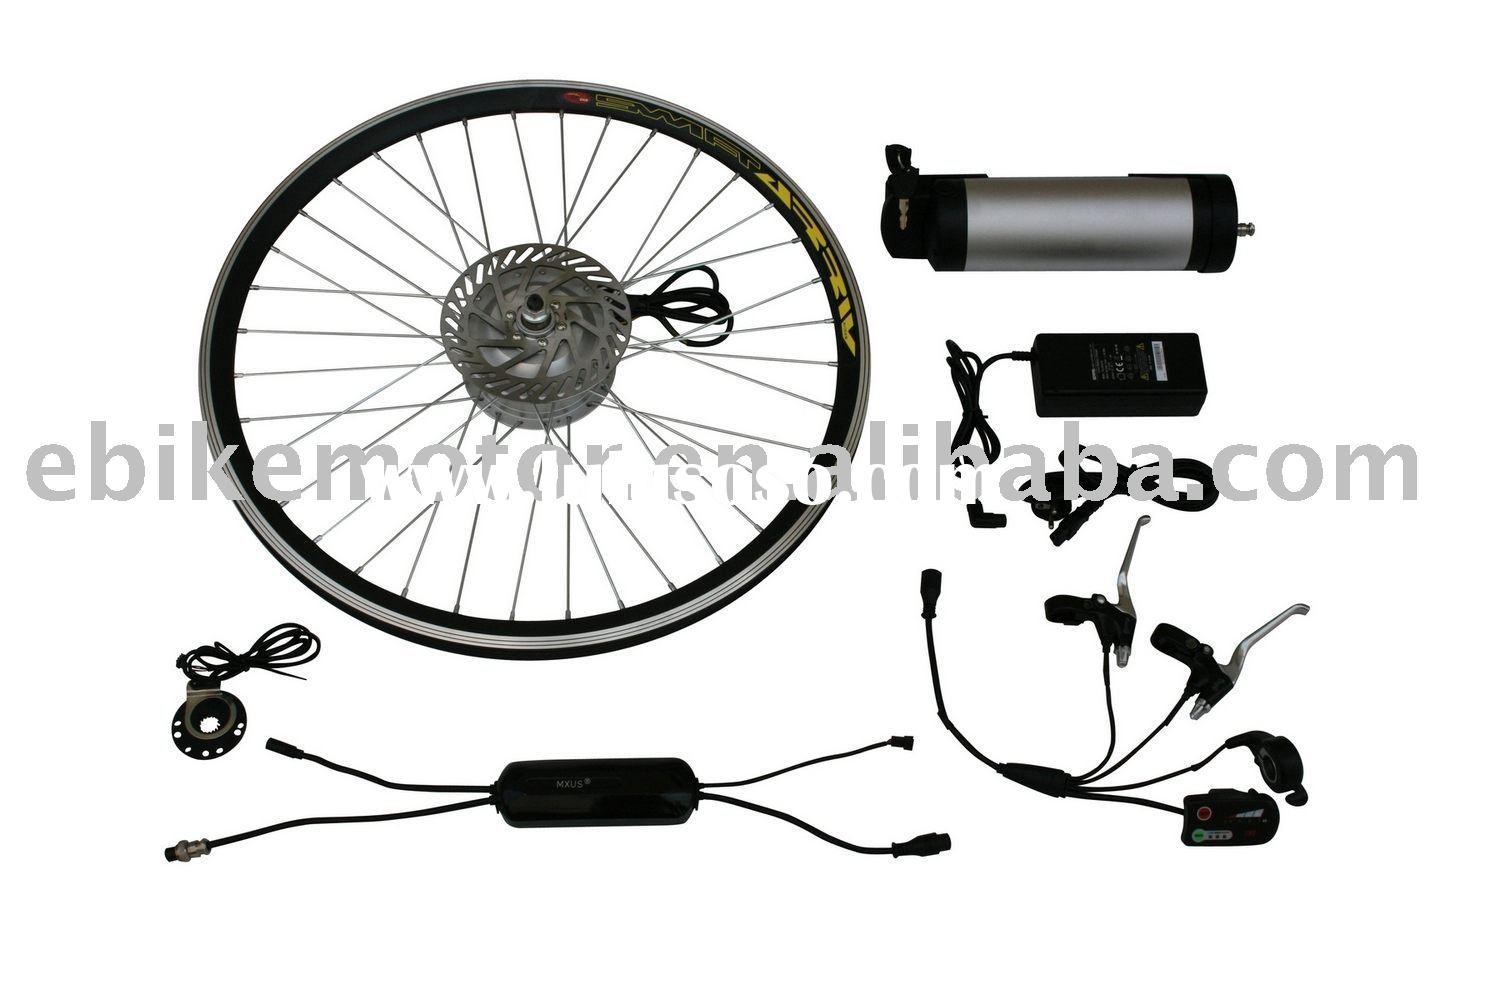 Electric Bicycle Motor Controller Brushless Dc For Sale